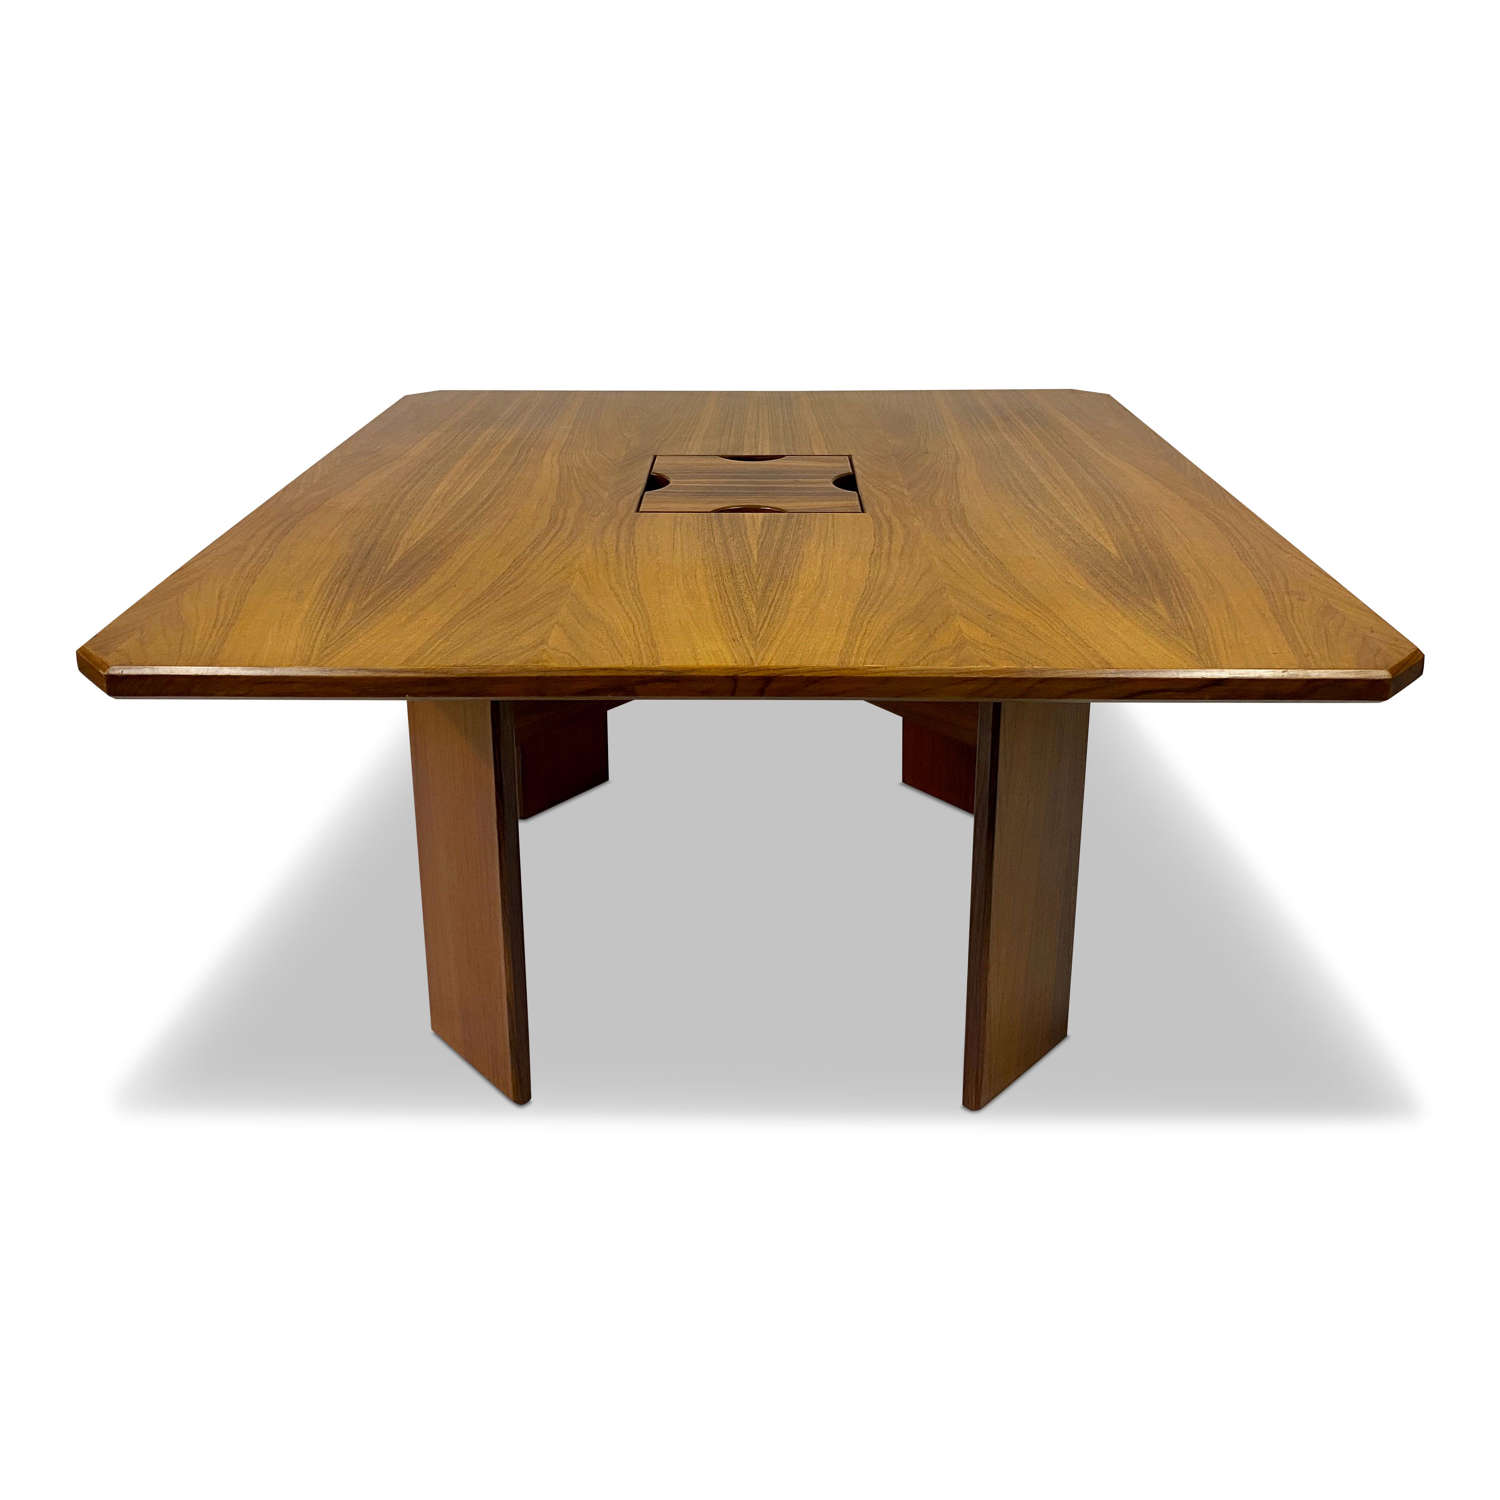 1970s Square Italian Rosewood Dining Table